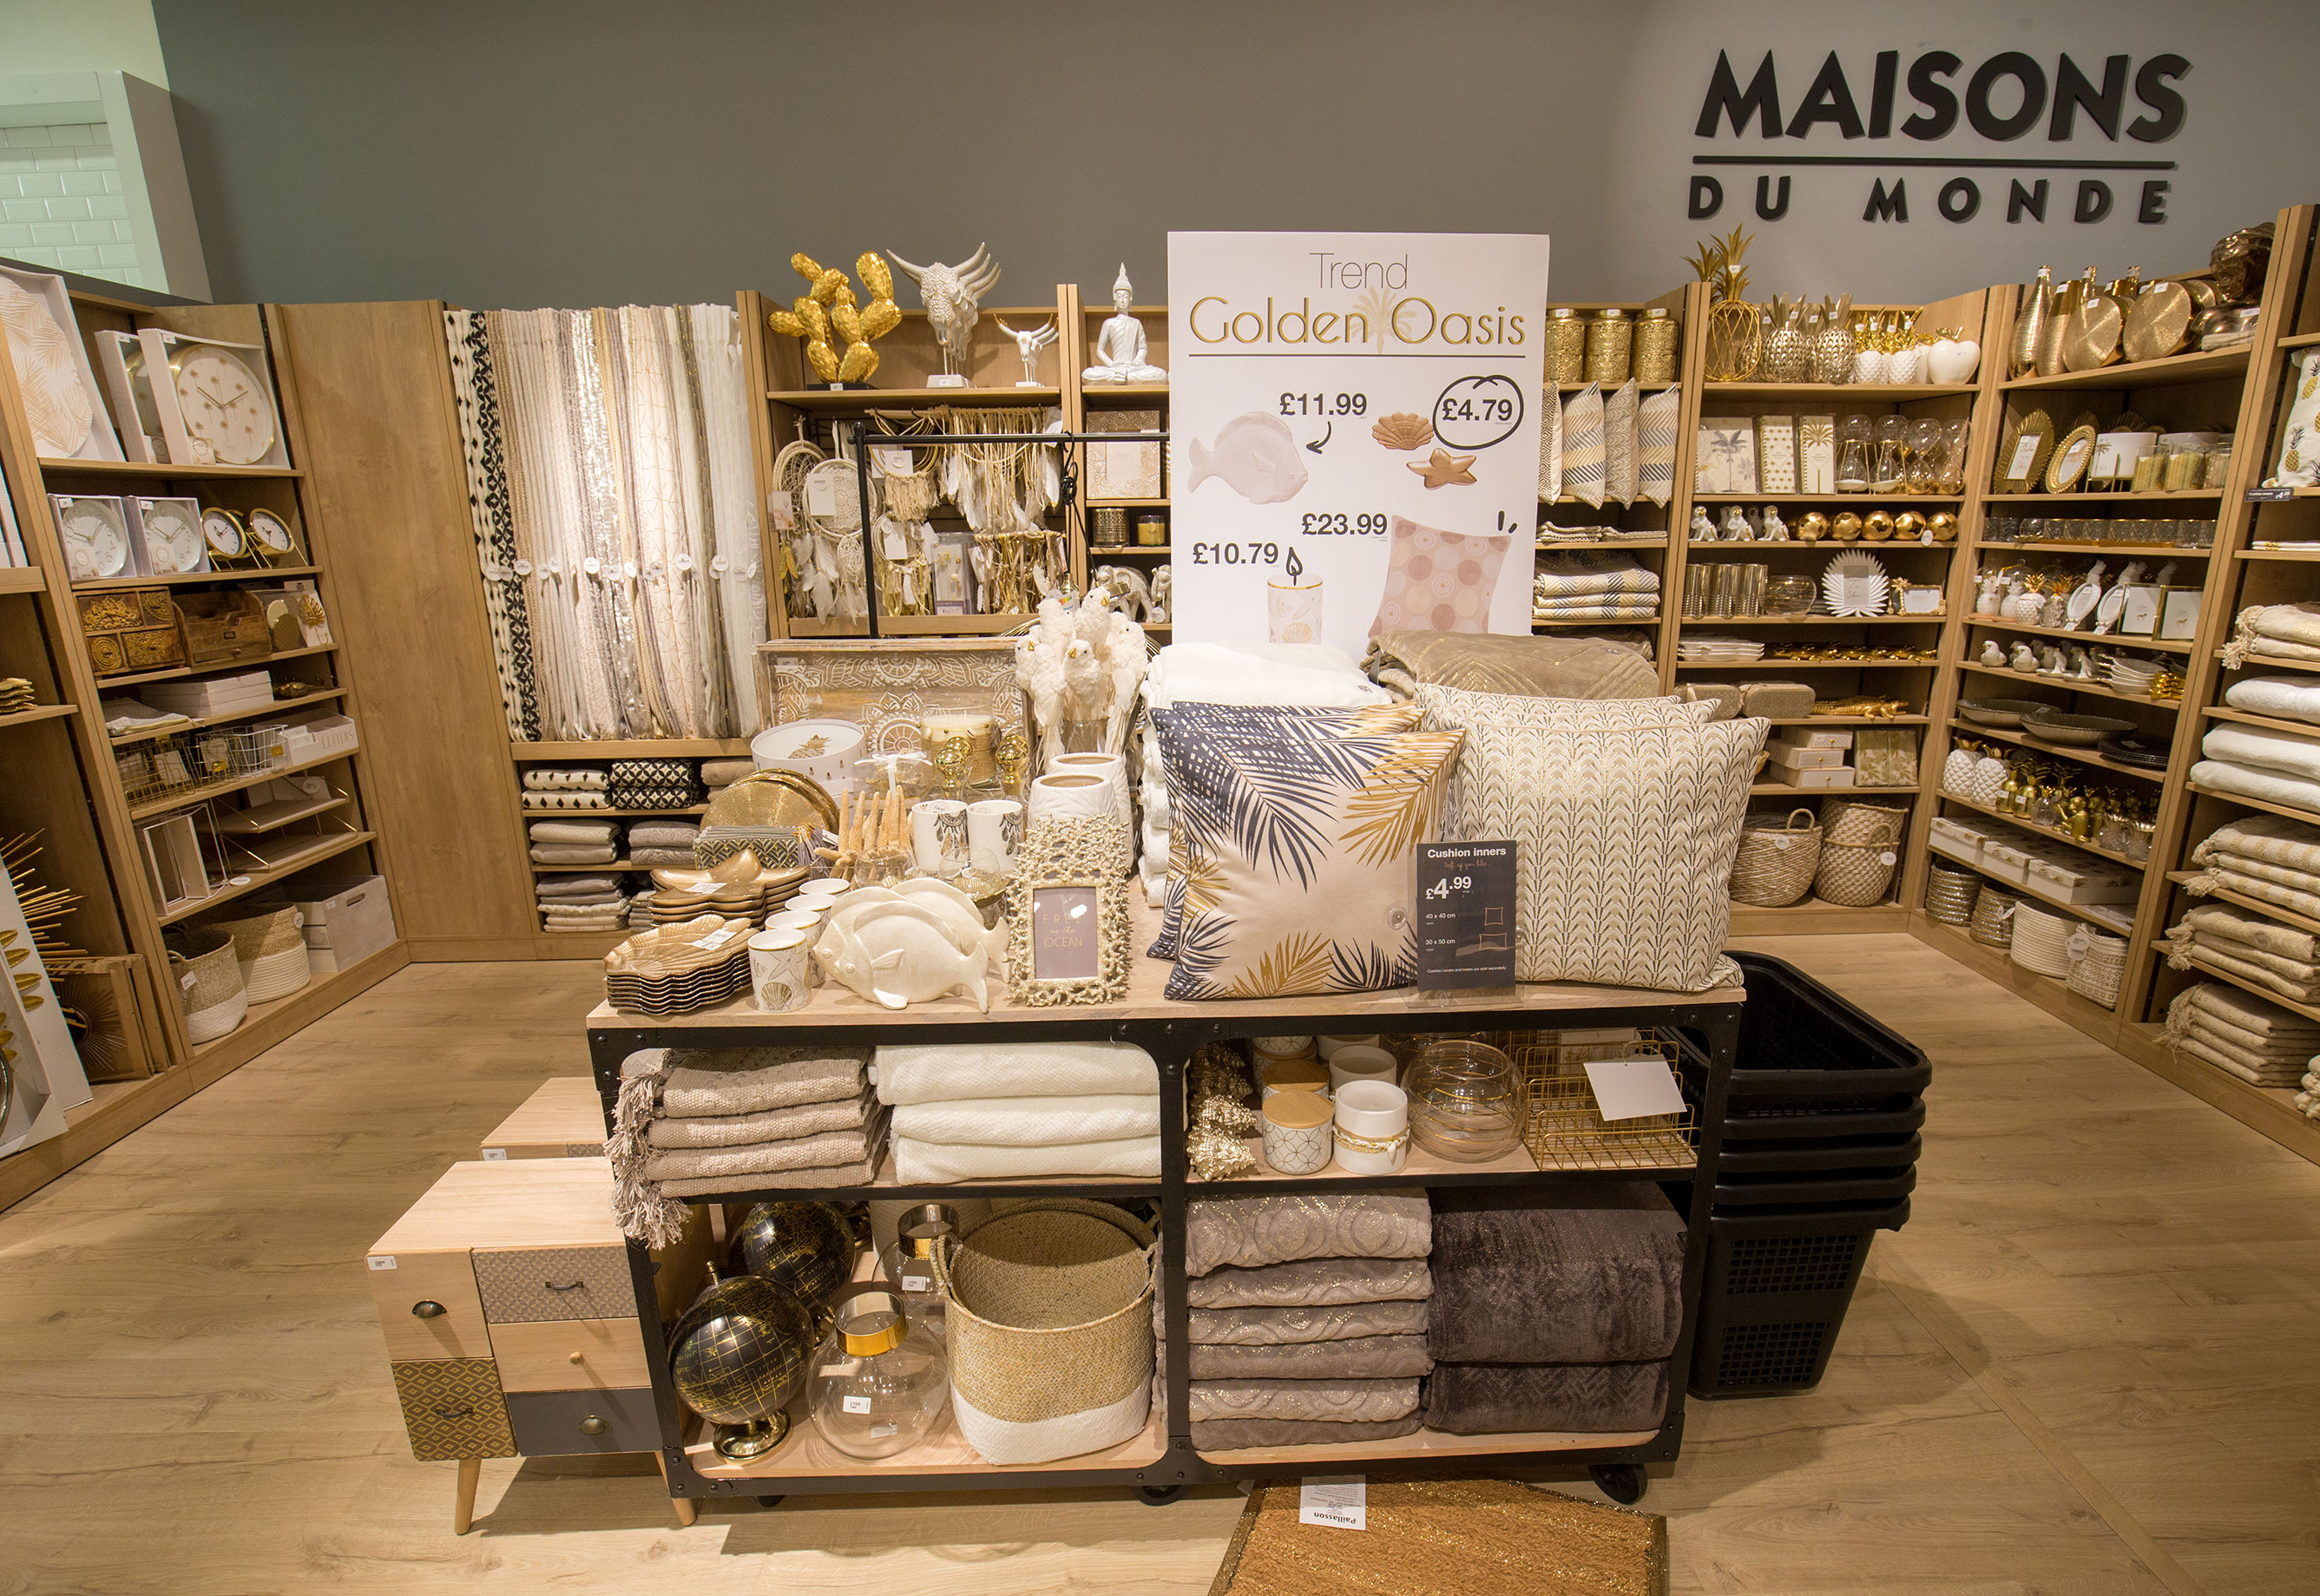 Maisons du monde opened 3 concessions in london westfield for Libreria maison du monde